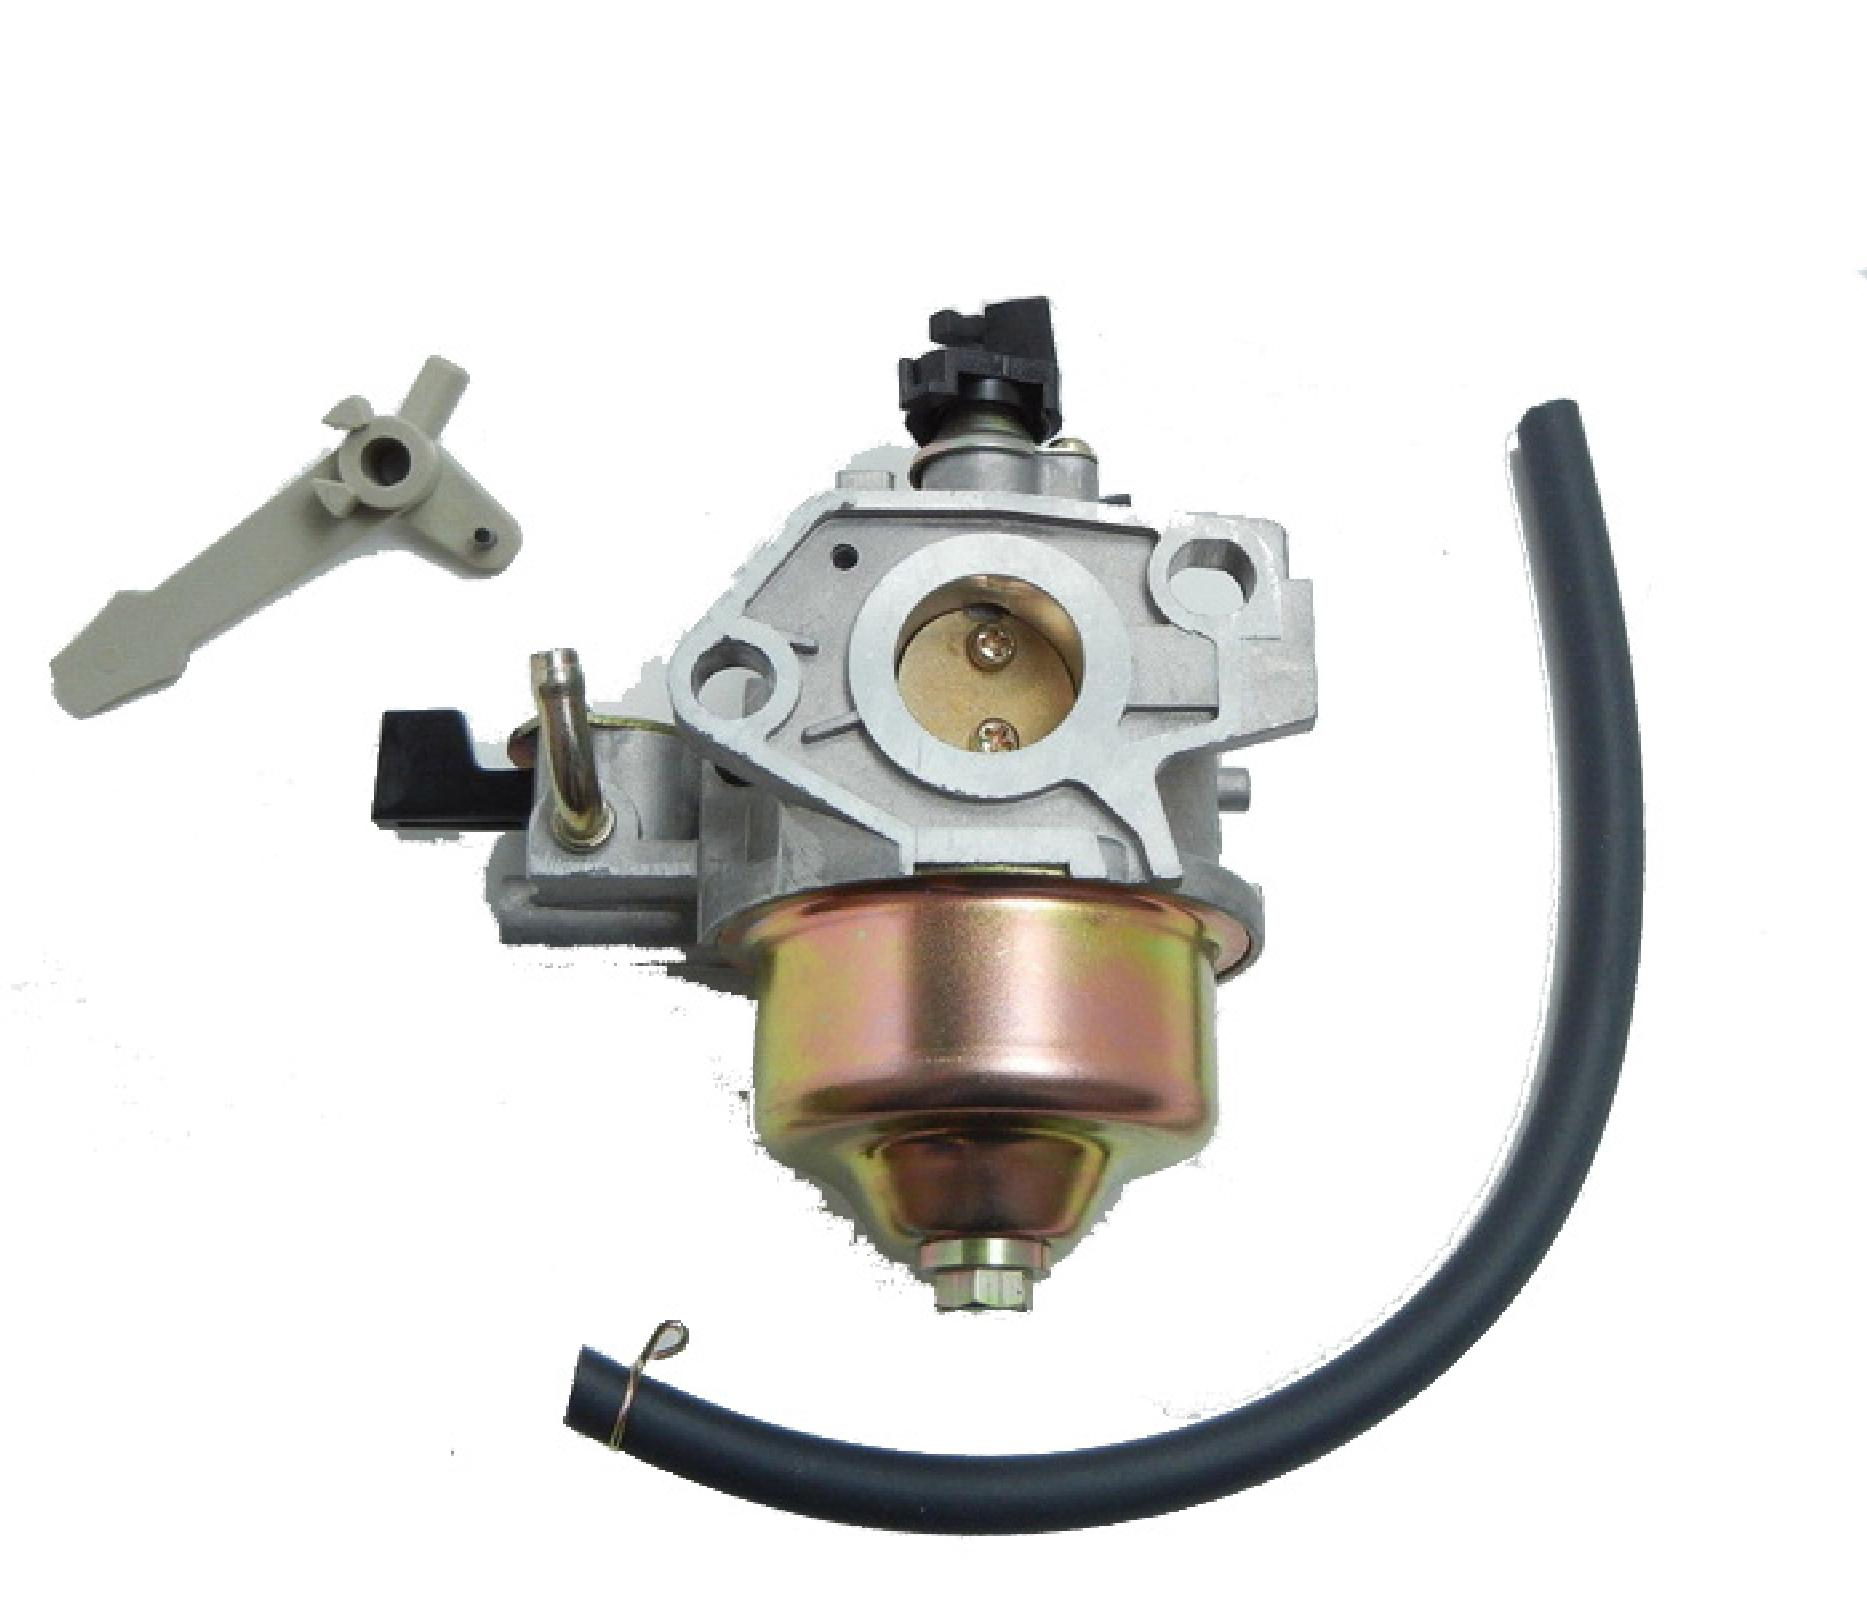 CARBURETOR REPLACEMENT FOR HONDA 16100-ZF2-V01 - 16100-ZF2-V0